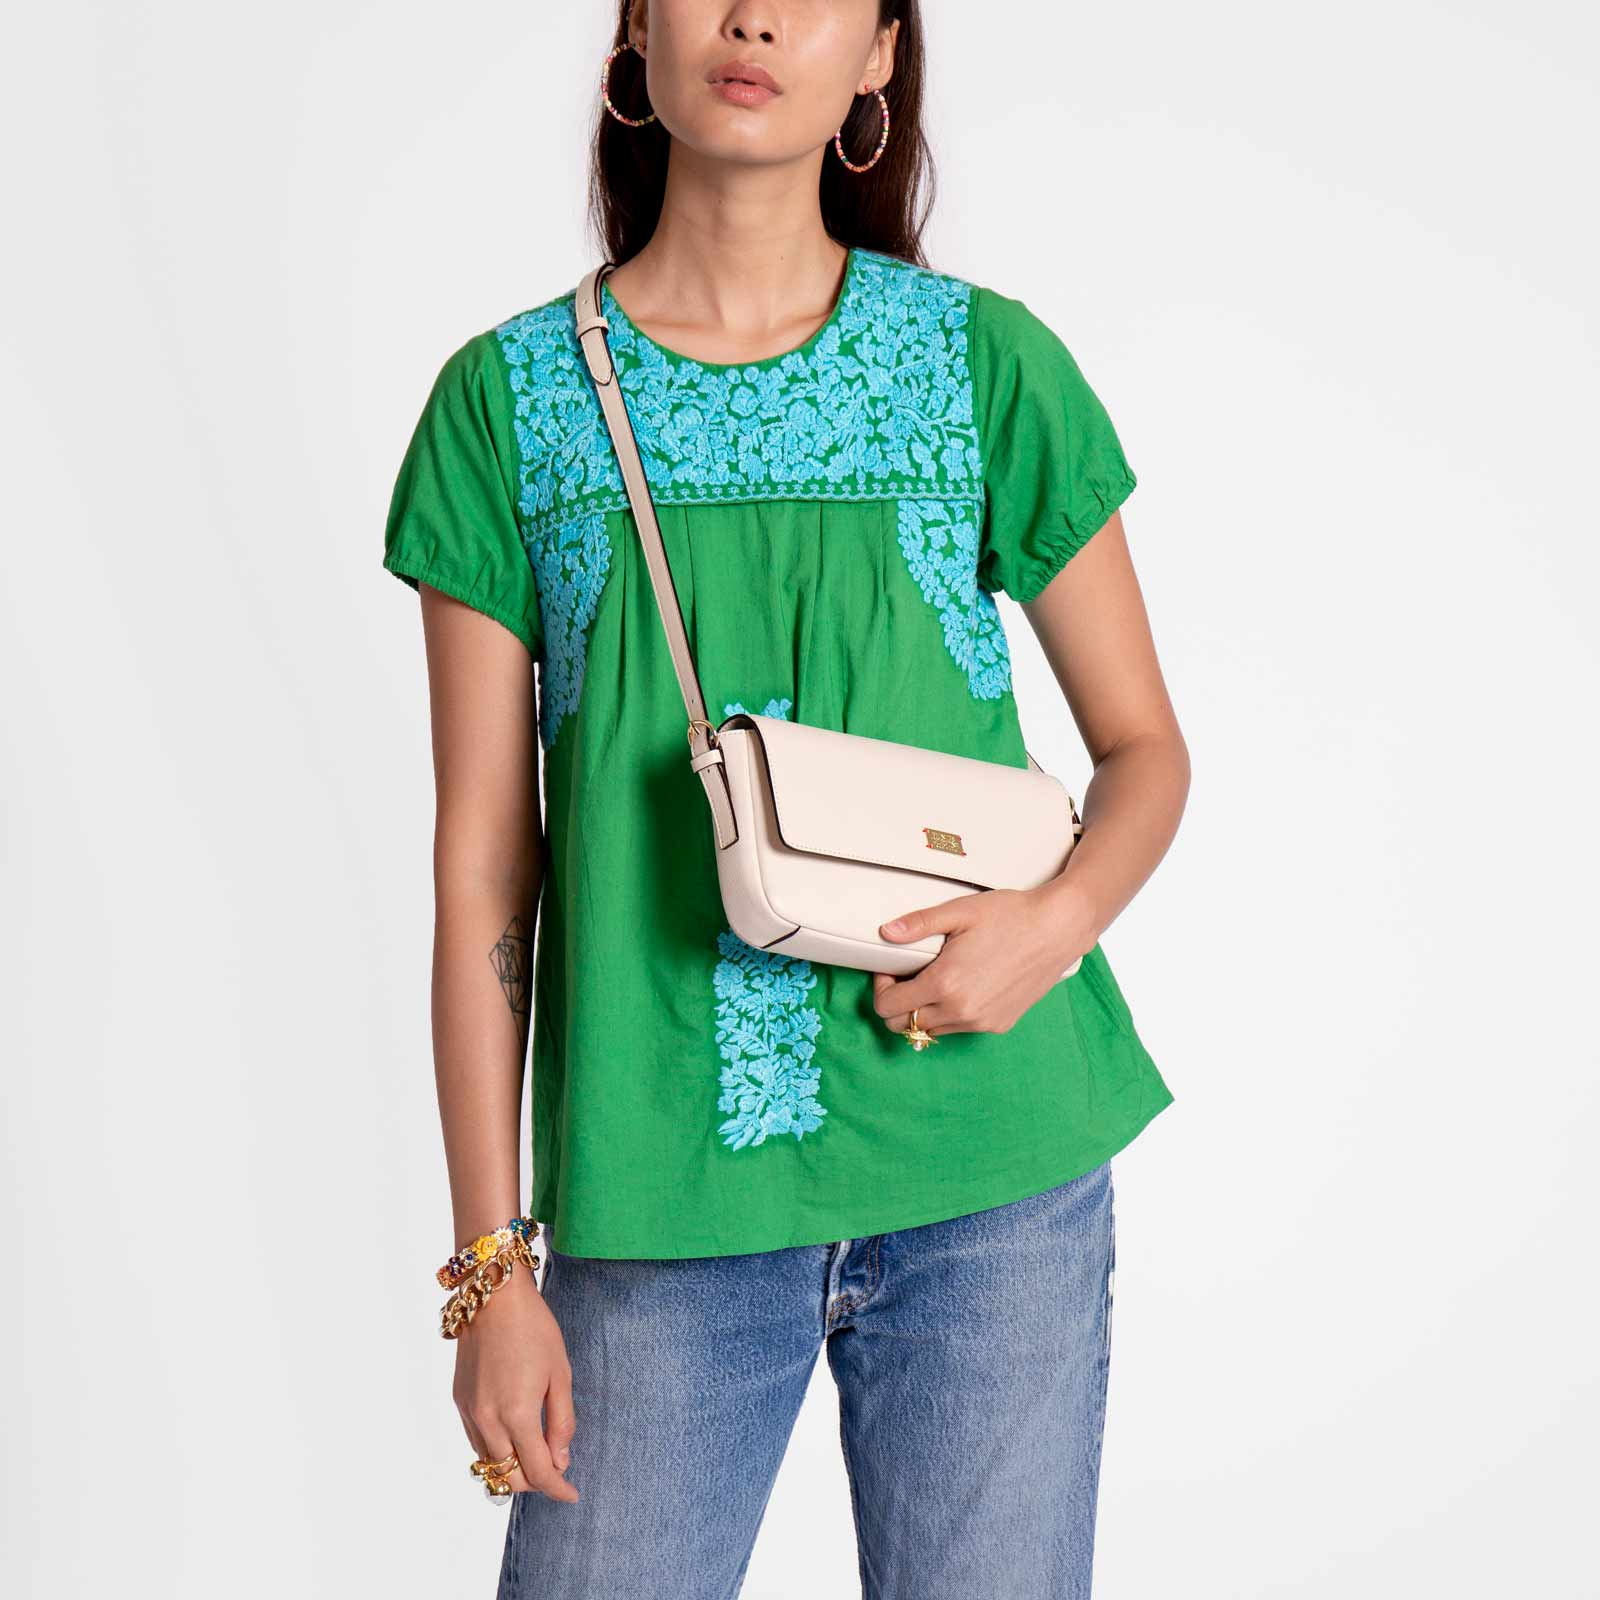 Floral Embroidered Lace Top Green Light Blue - Frances Valentine